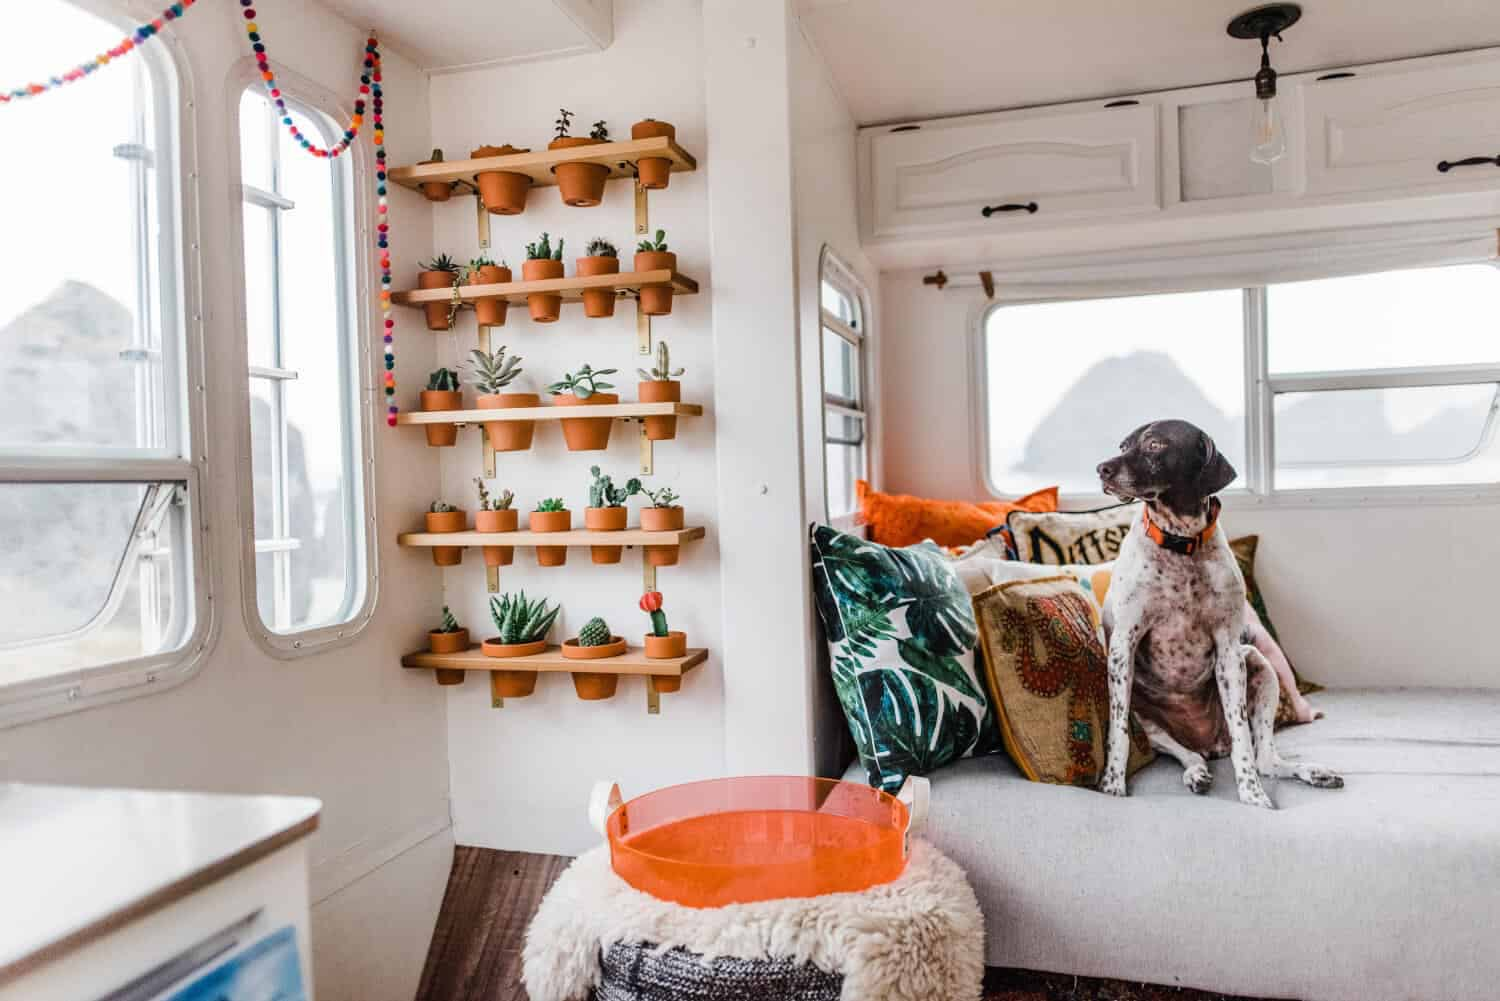 Campercontact - Brighten up the interior of your motorhome with plants (Source: Mandy Holesh @188sqft)